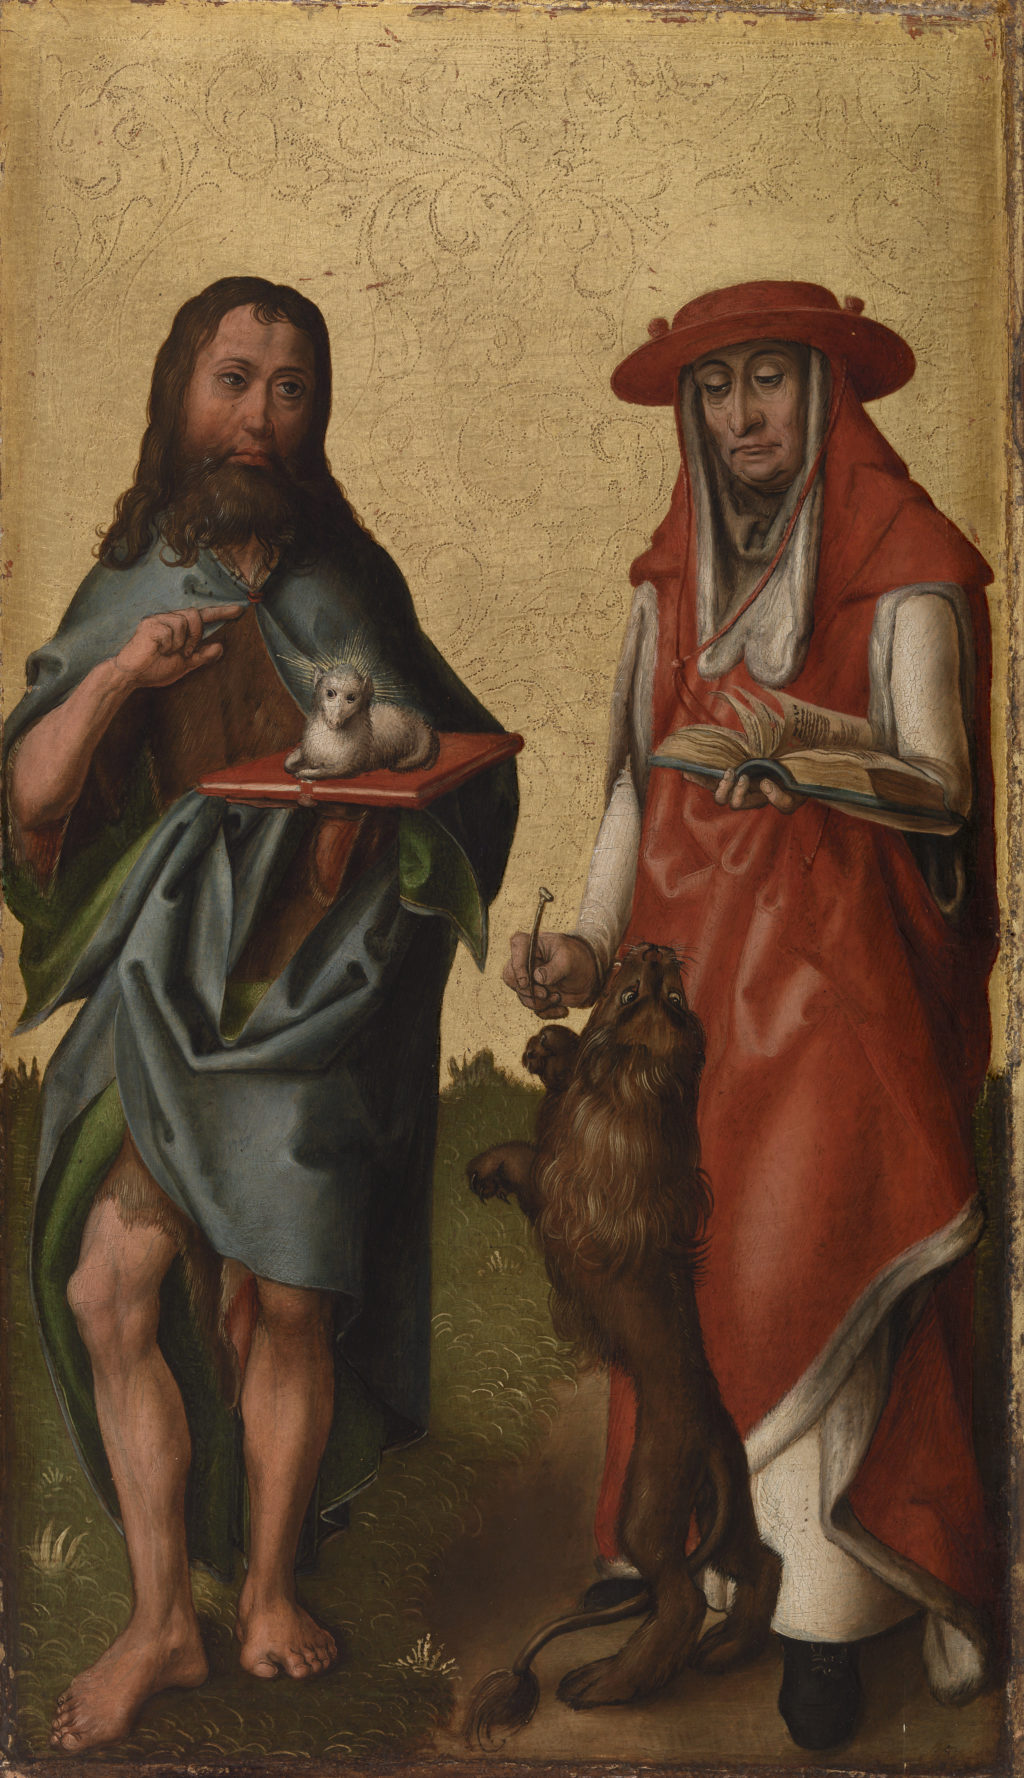 Saints John the Baptist and Jerome